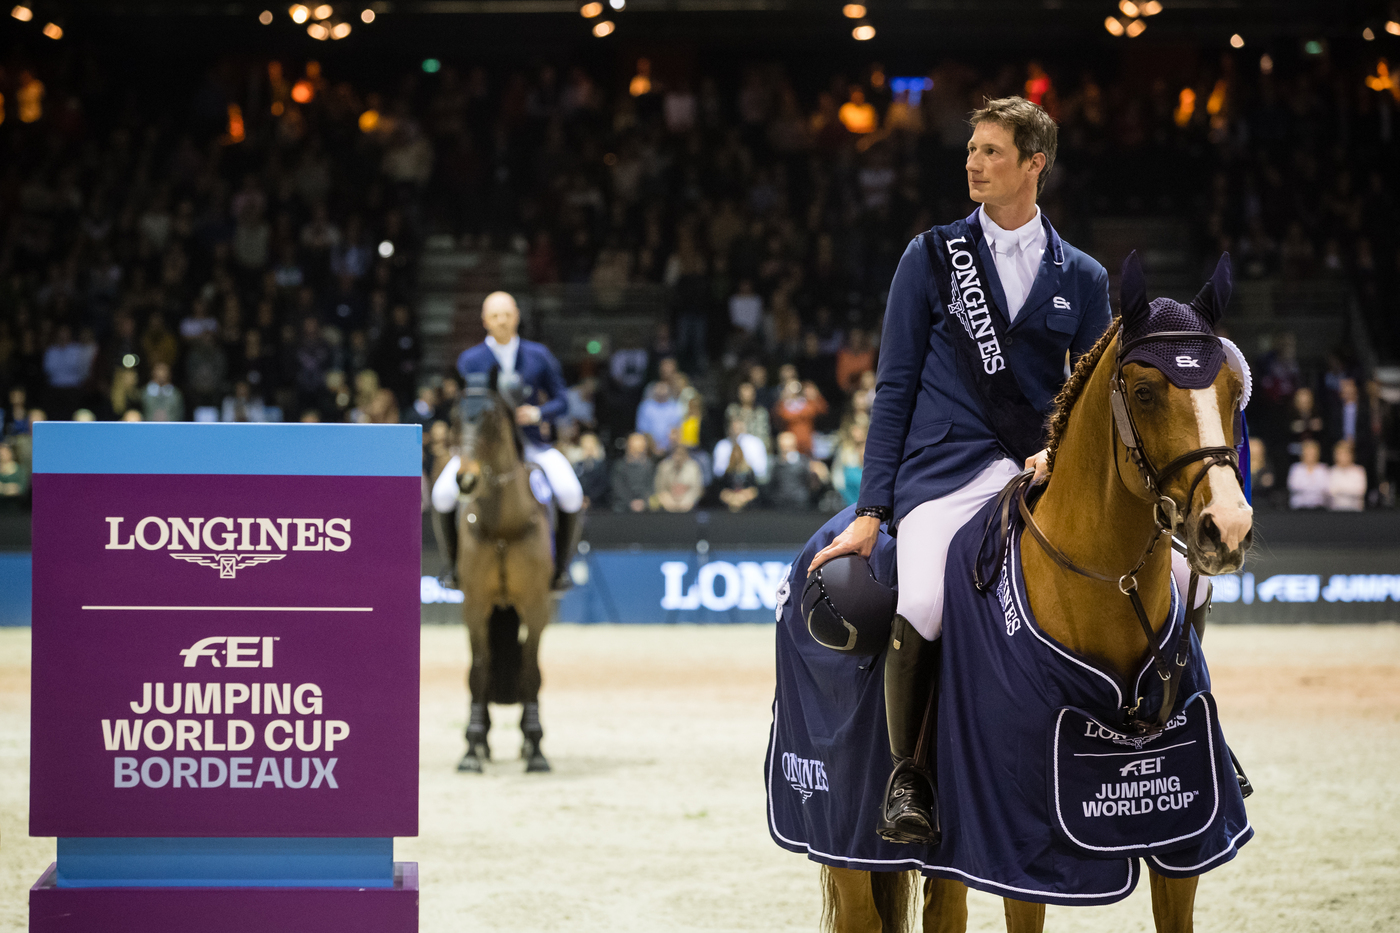 Longines Show Jumping Event: Daniel Deusser and Tobago Z claimed stunning victory at the Longines FEI Jumping World Cup™ leg in Bordeaux 1